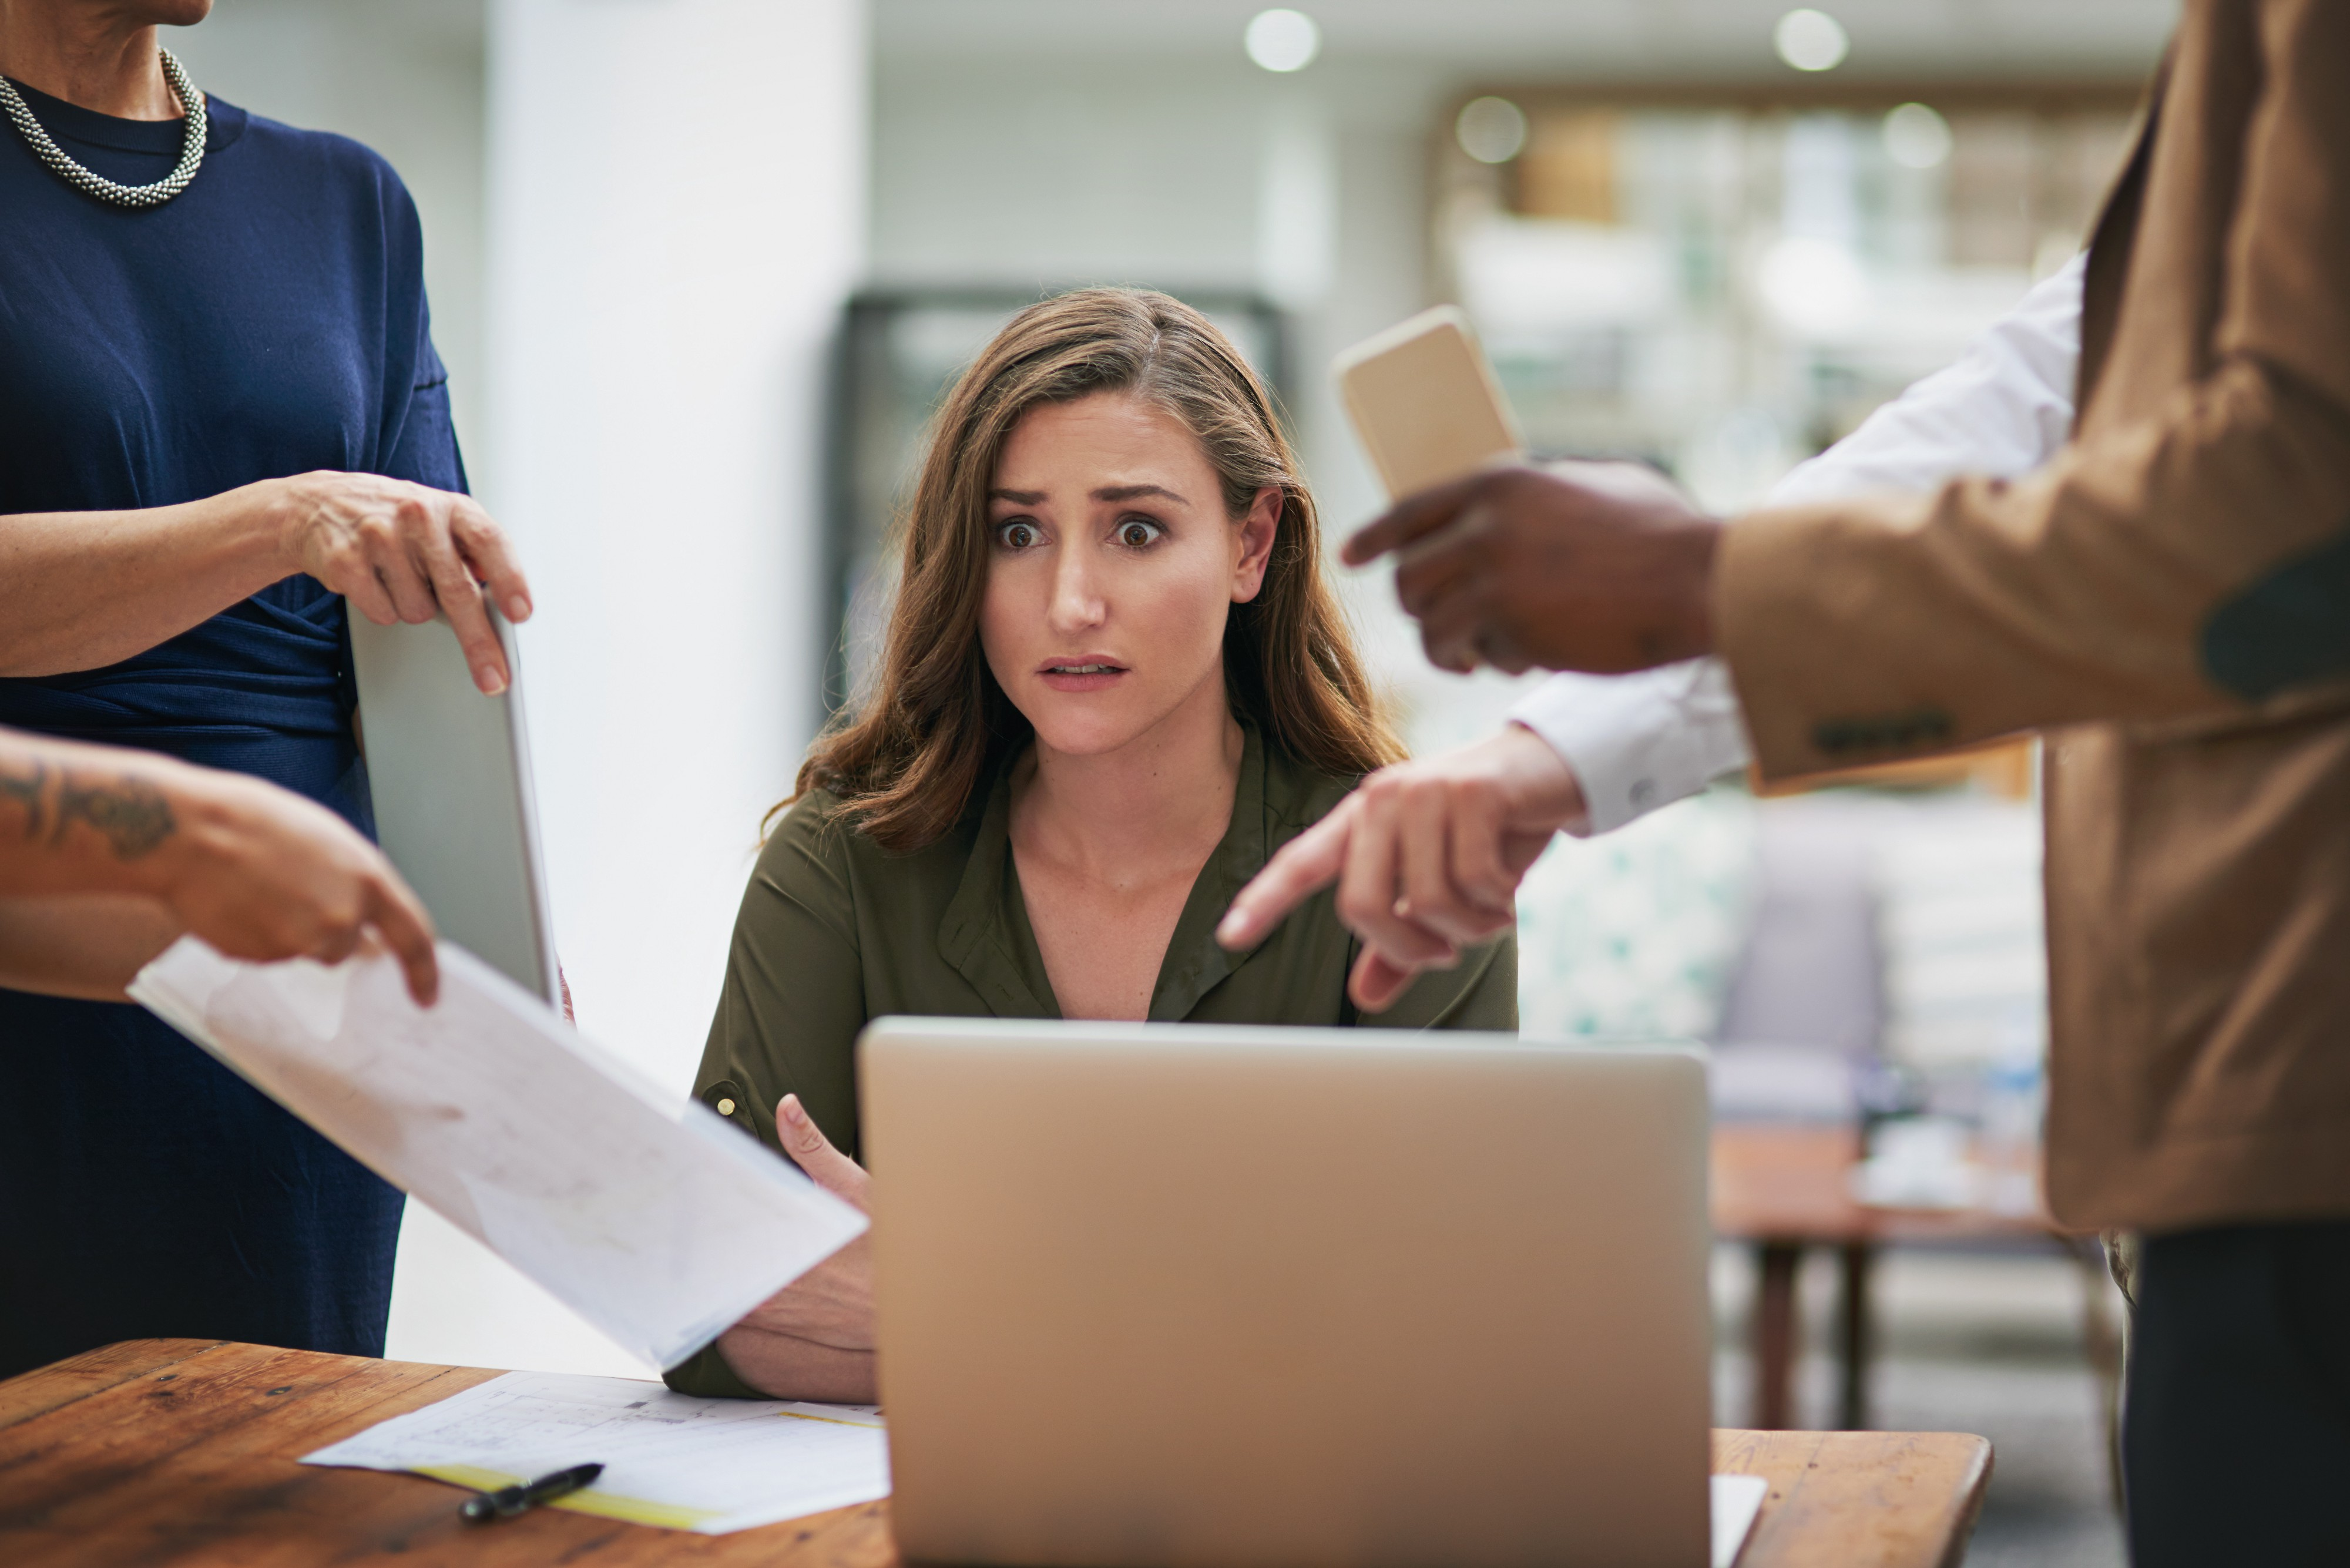 A young business woman looks anxious as her coworkers surround her desk demanding things of her.